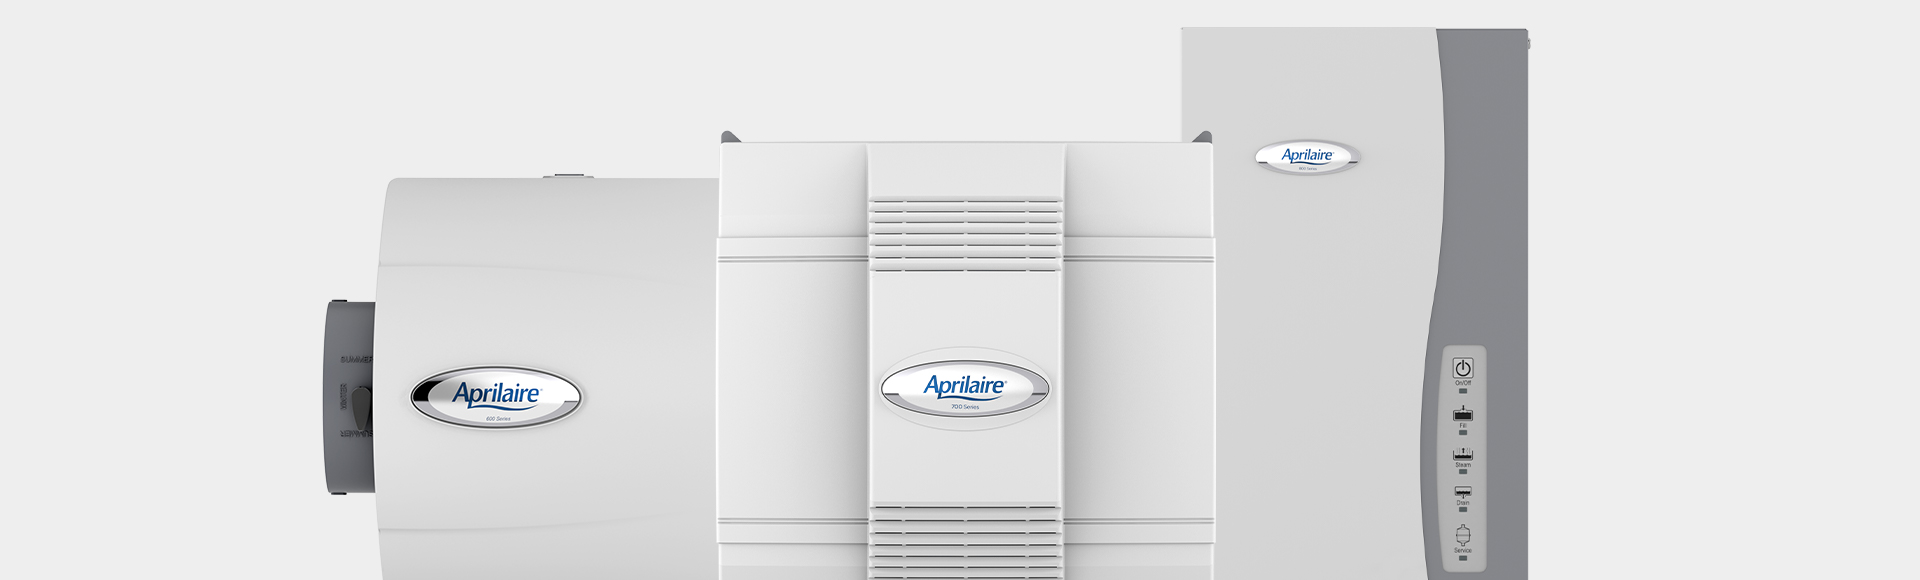 Aprilaire Whole-Home Humidifiers